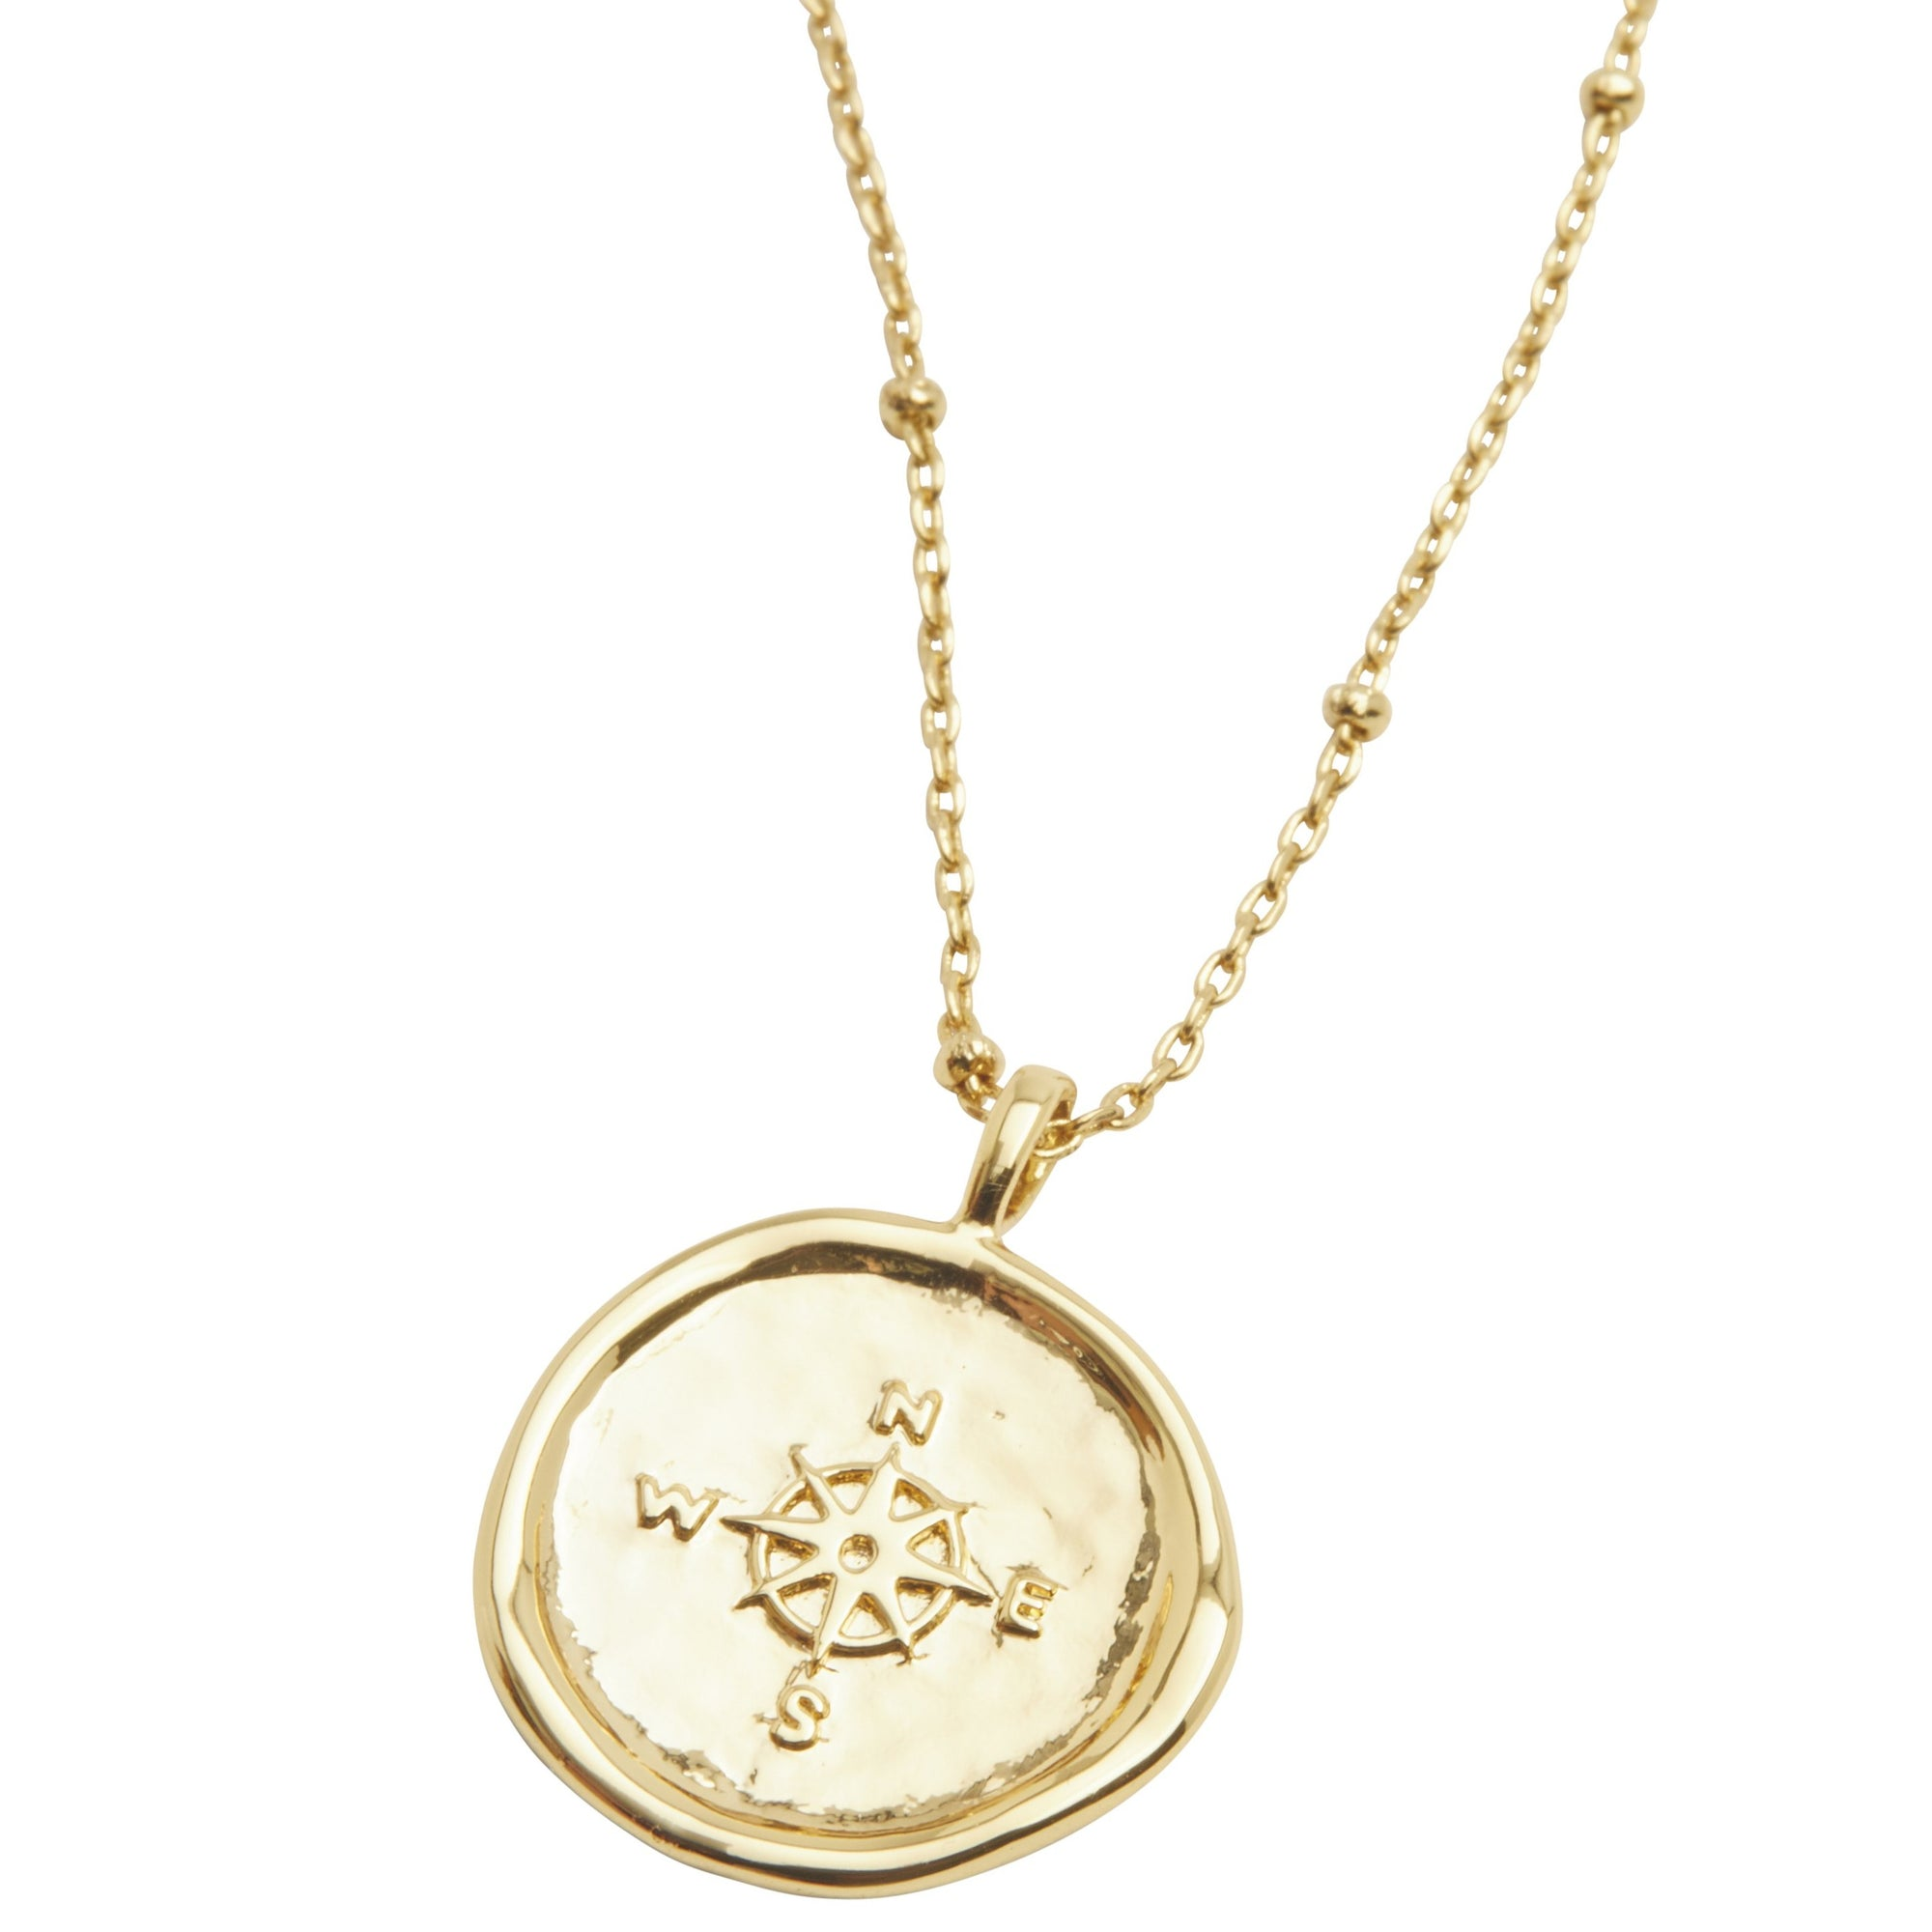 Gorjana Compass Coin Necklace. This unique coin necklace has the feel of a family heirloom. This coin charm centers on an ever-so-dainty ball chain that effortlessly elevates your layered look.